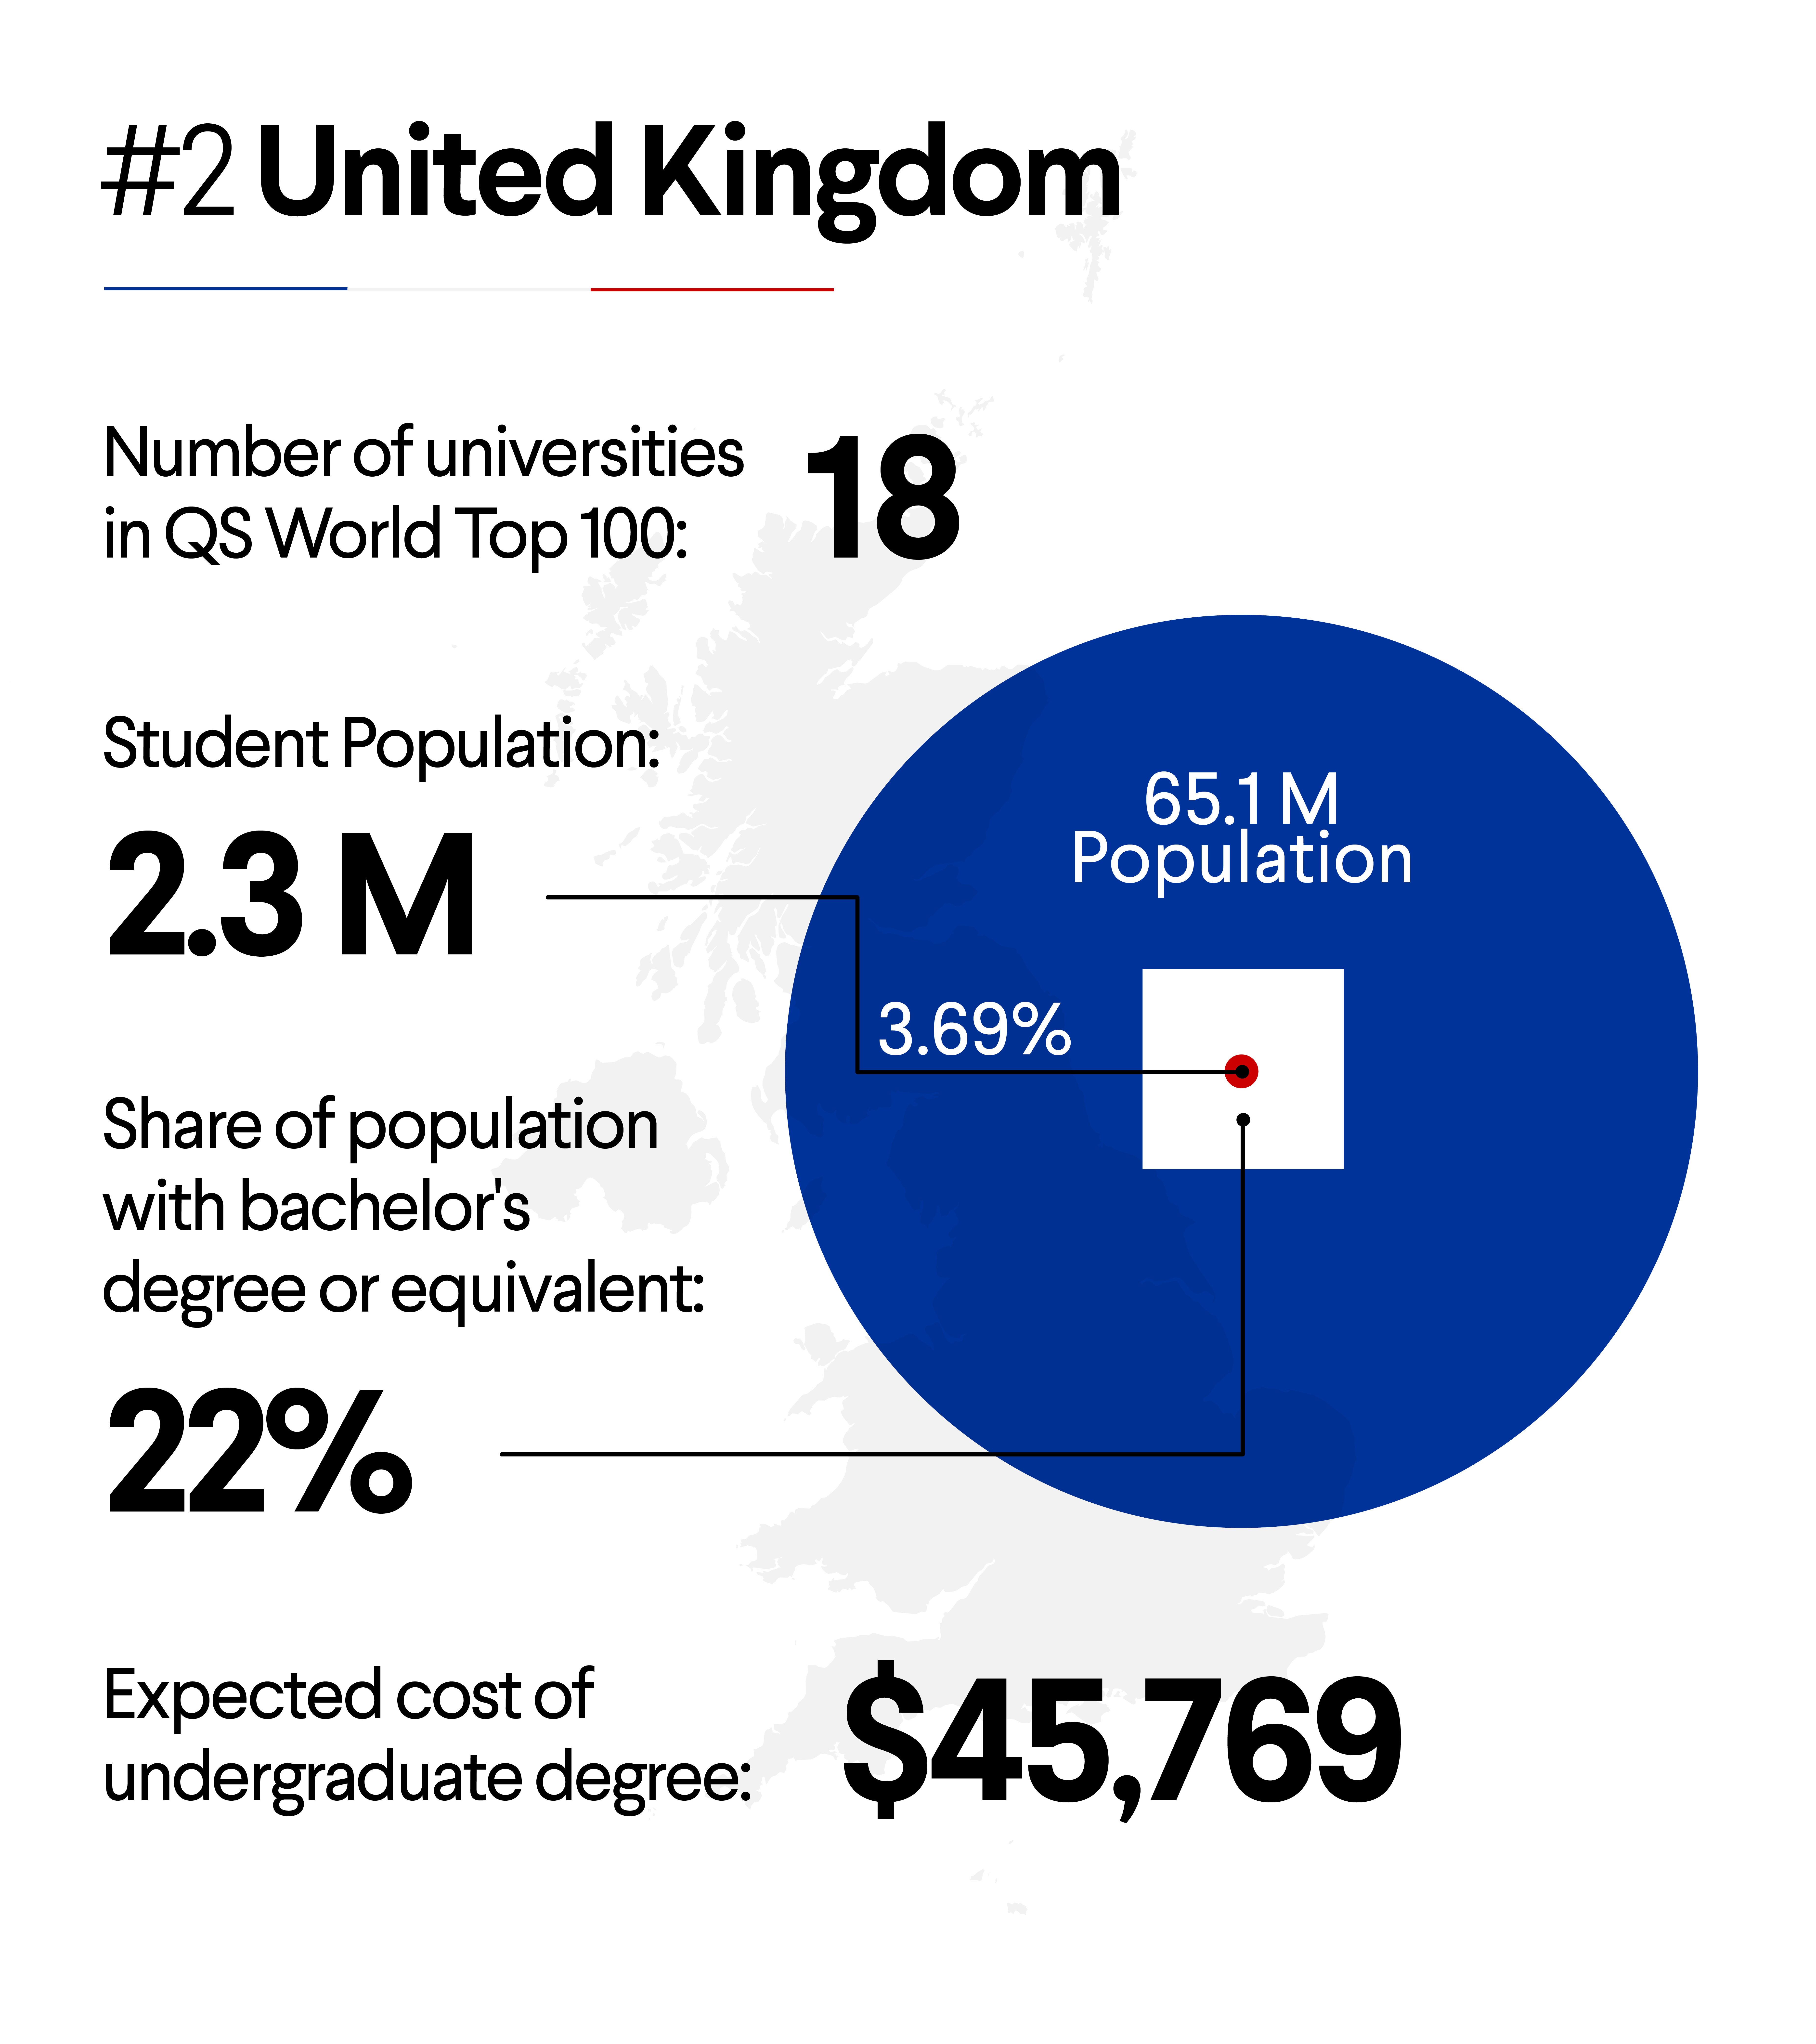 The United Kingdom ranked #2 in countries leading in university education